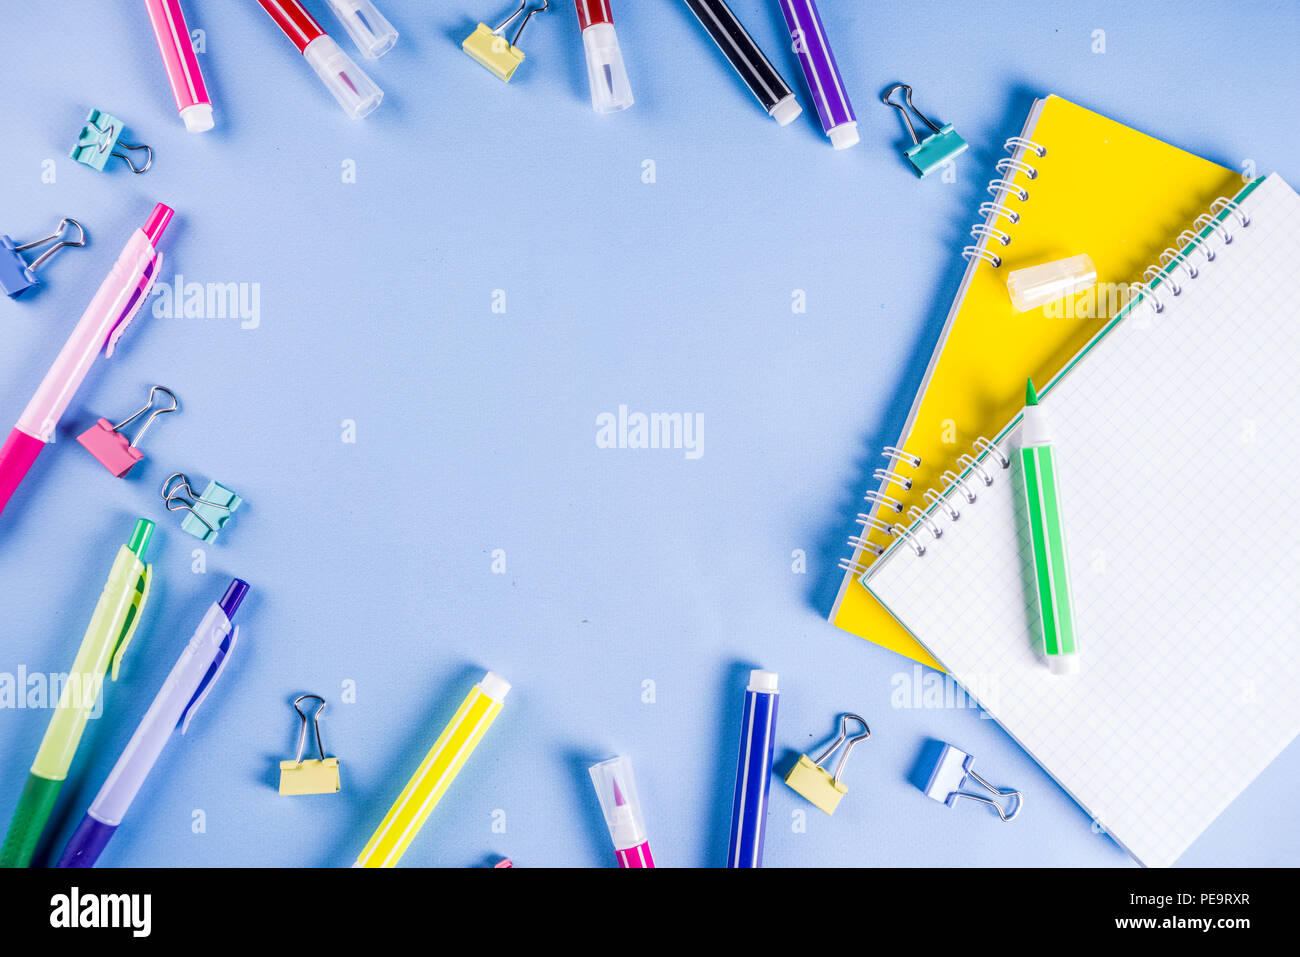 Back to school background, with bright accessories supplies for school and study - pen, pencils, markers, pencils, rulers, paperclips, sticks, noteboo - Stock Image